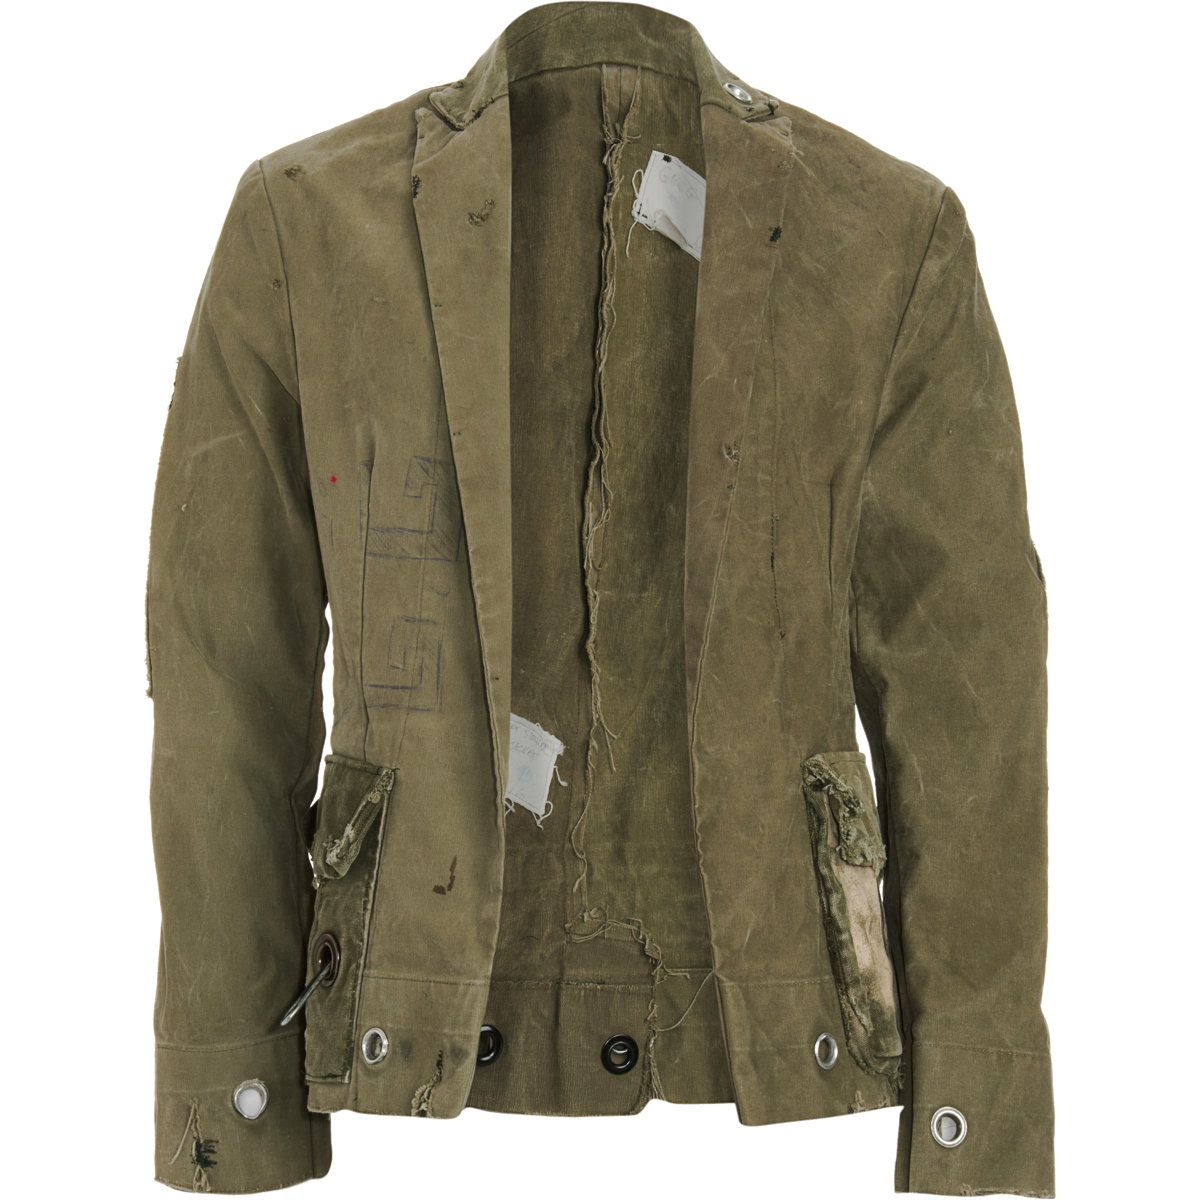 Tent Jacket Lauren Gregg Upcycled Army Tent Jacket Blazer Canvas Men